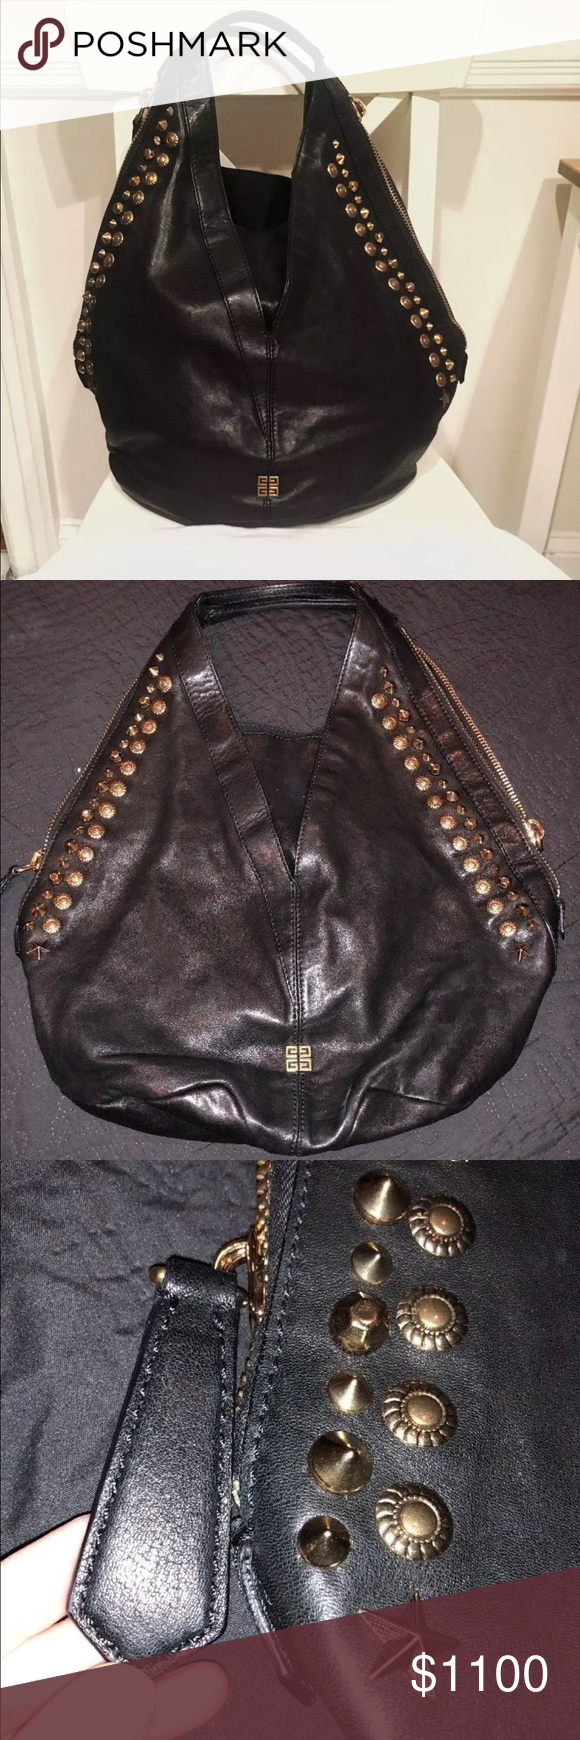 3e0d6f32b4c6 GIVENCHY Black Lambskin Gold Studded TINHAN Bag Get ready to give your look  an edgy finish